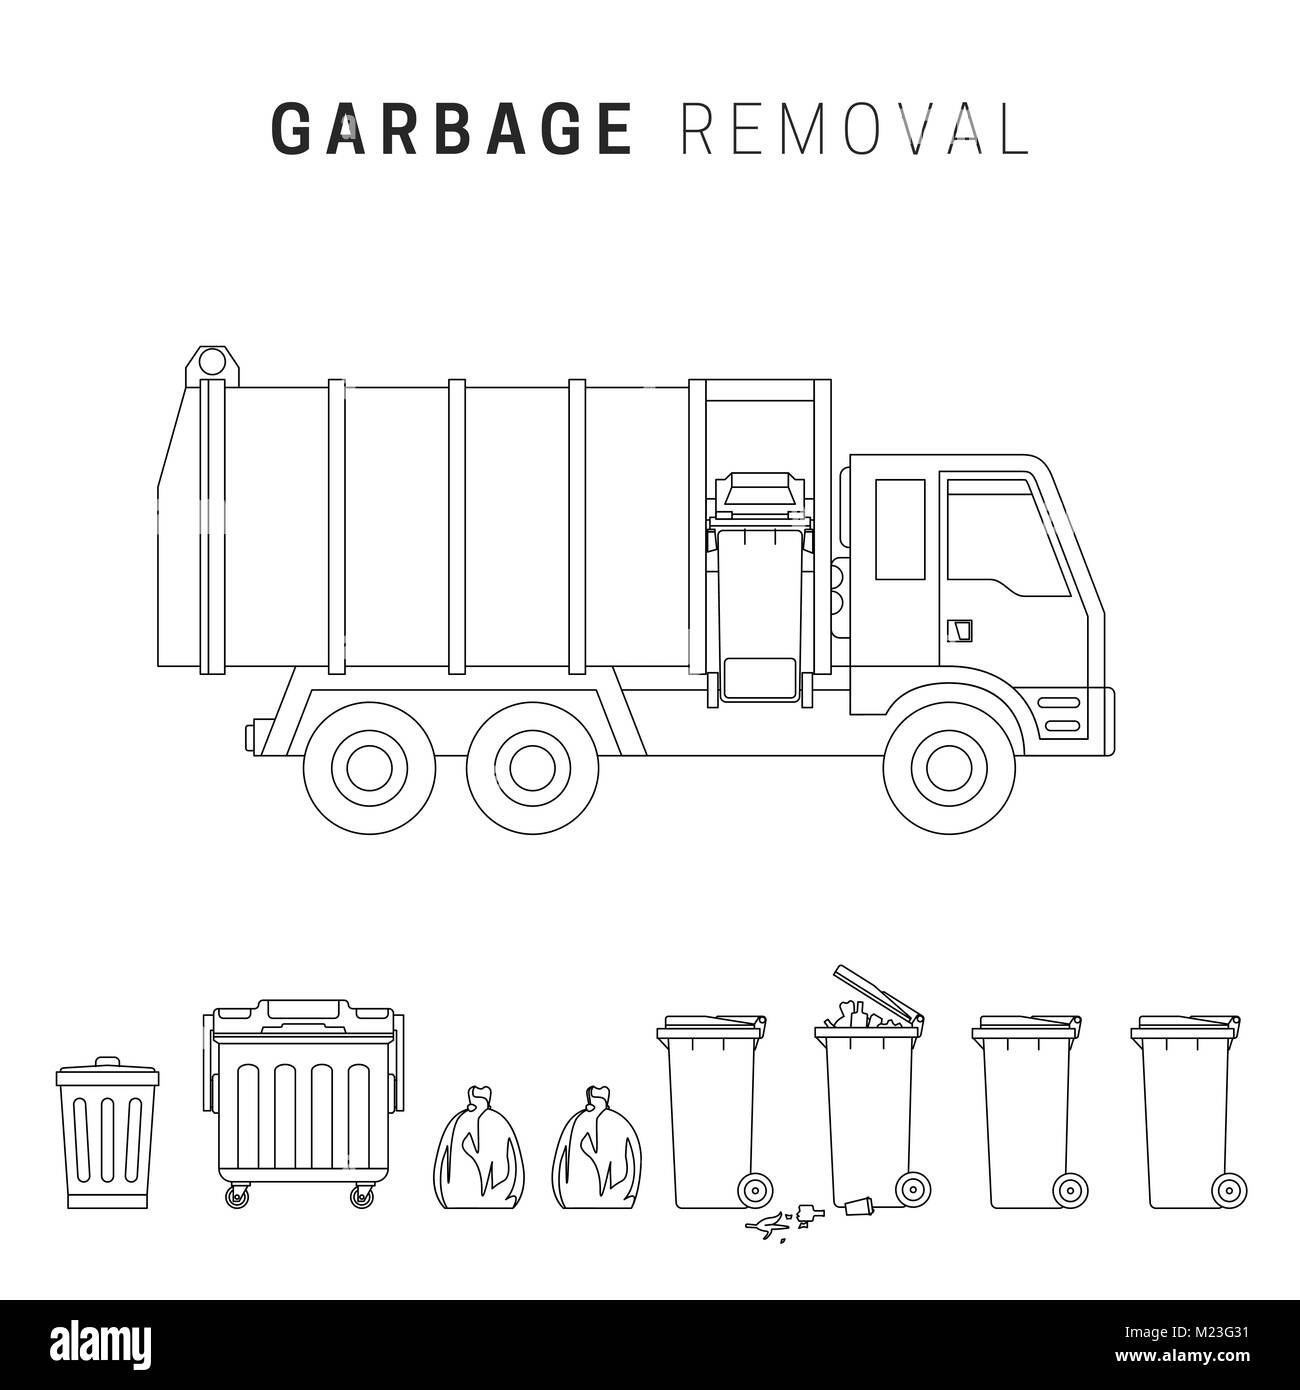 Garbage removal line drawing - Stock Vector